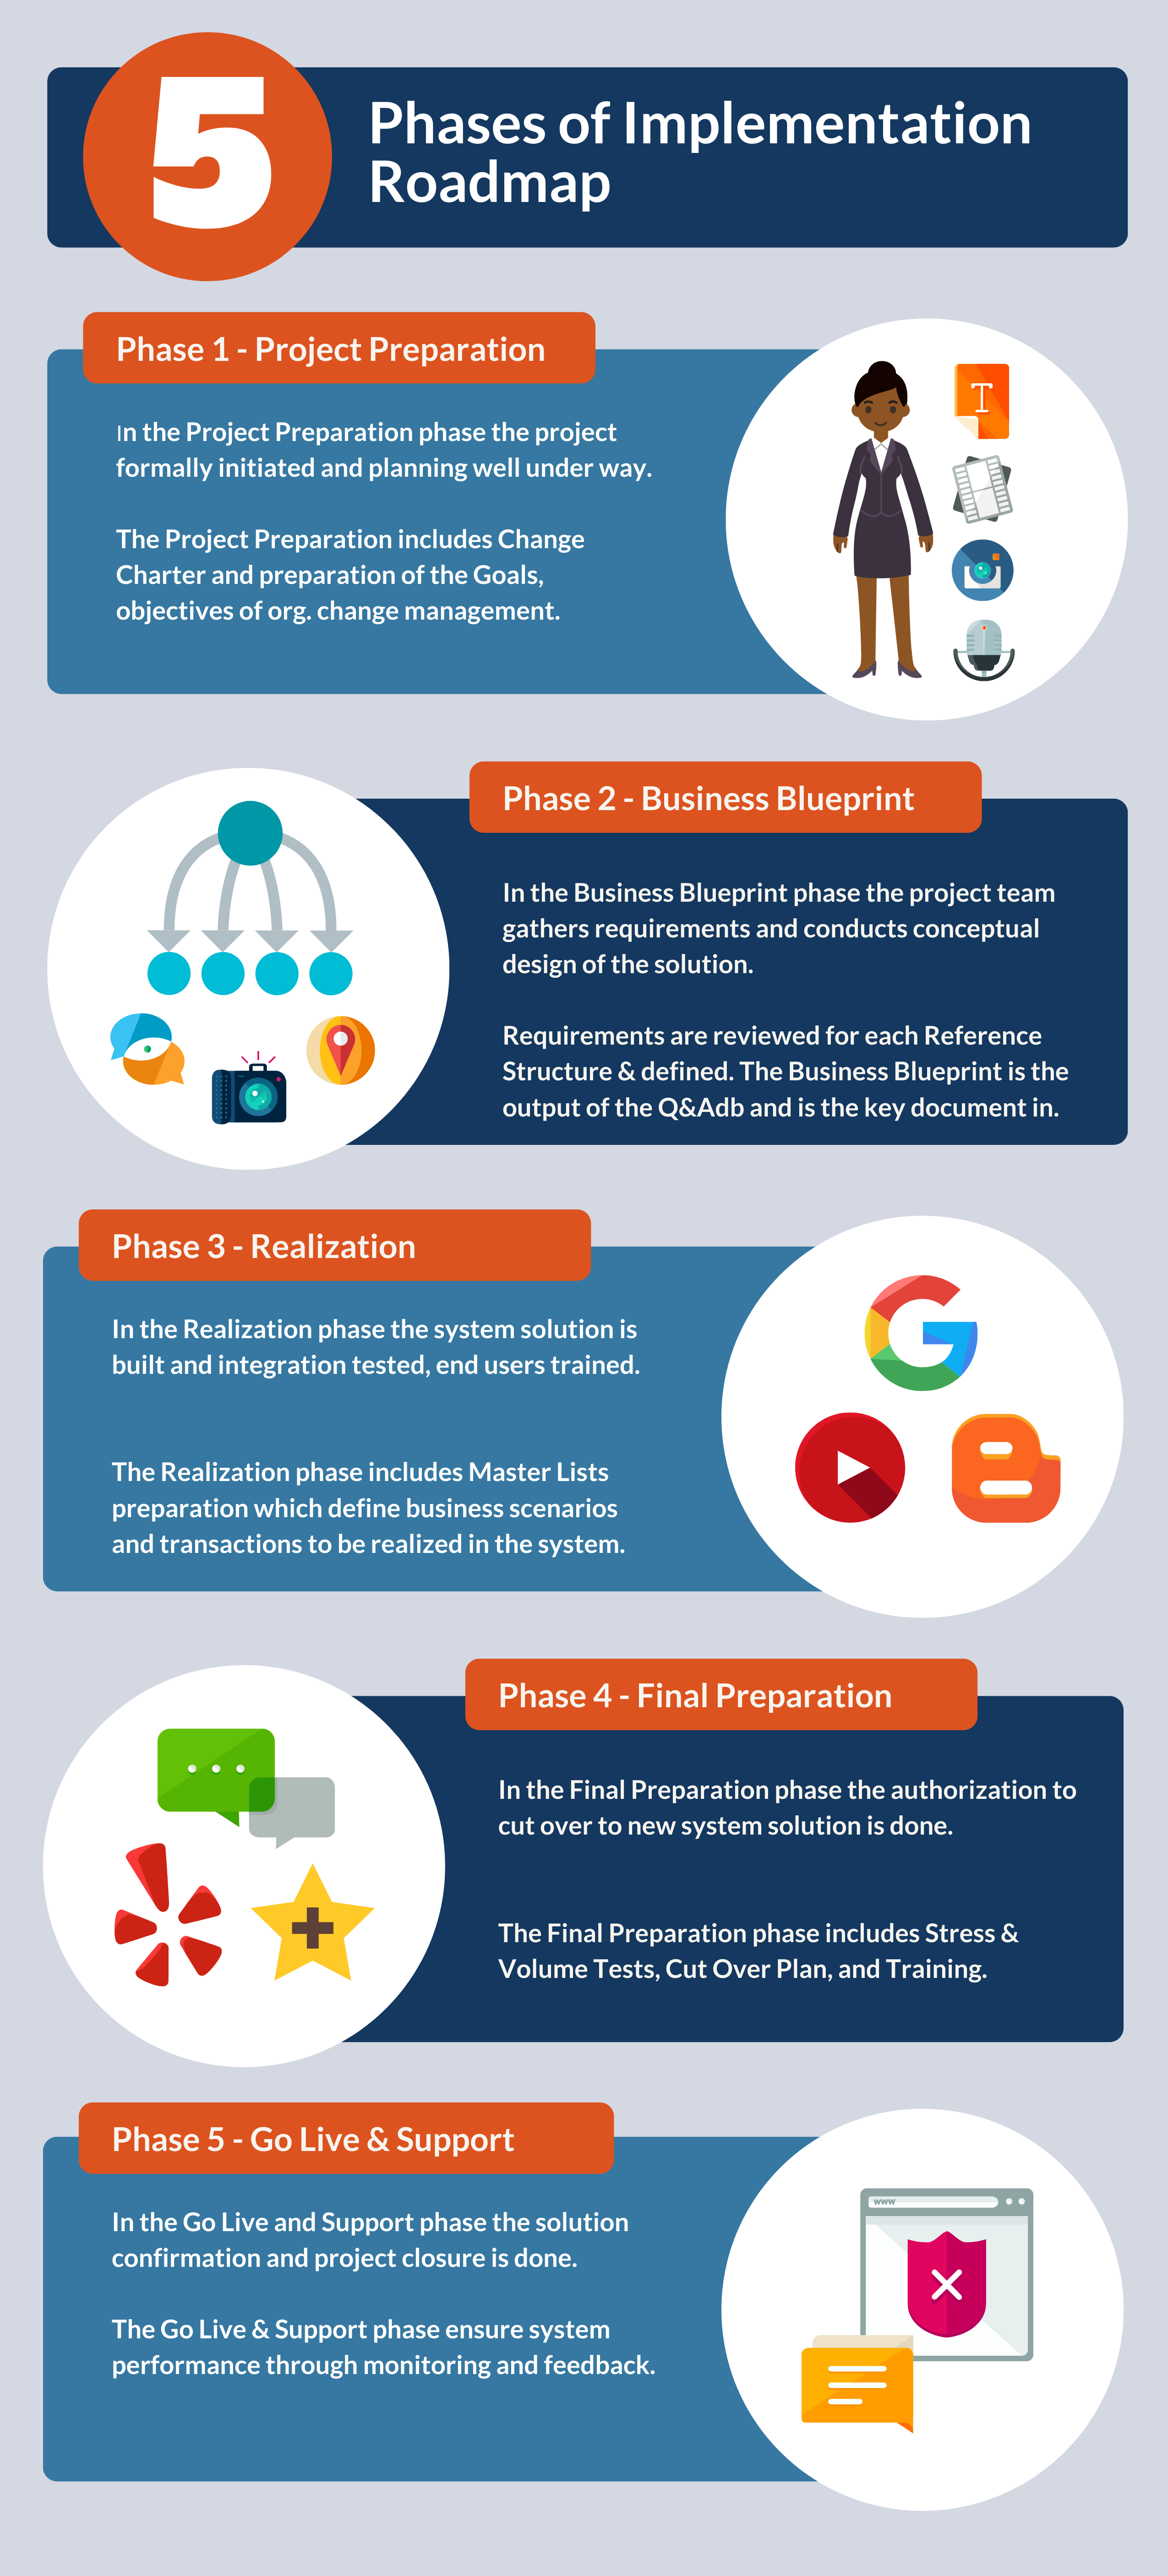 What are the phases of Implementation Roadmap